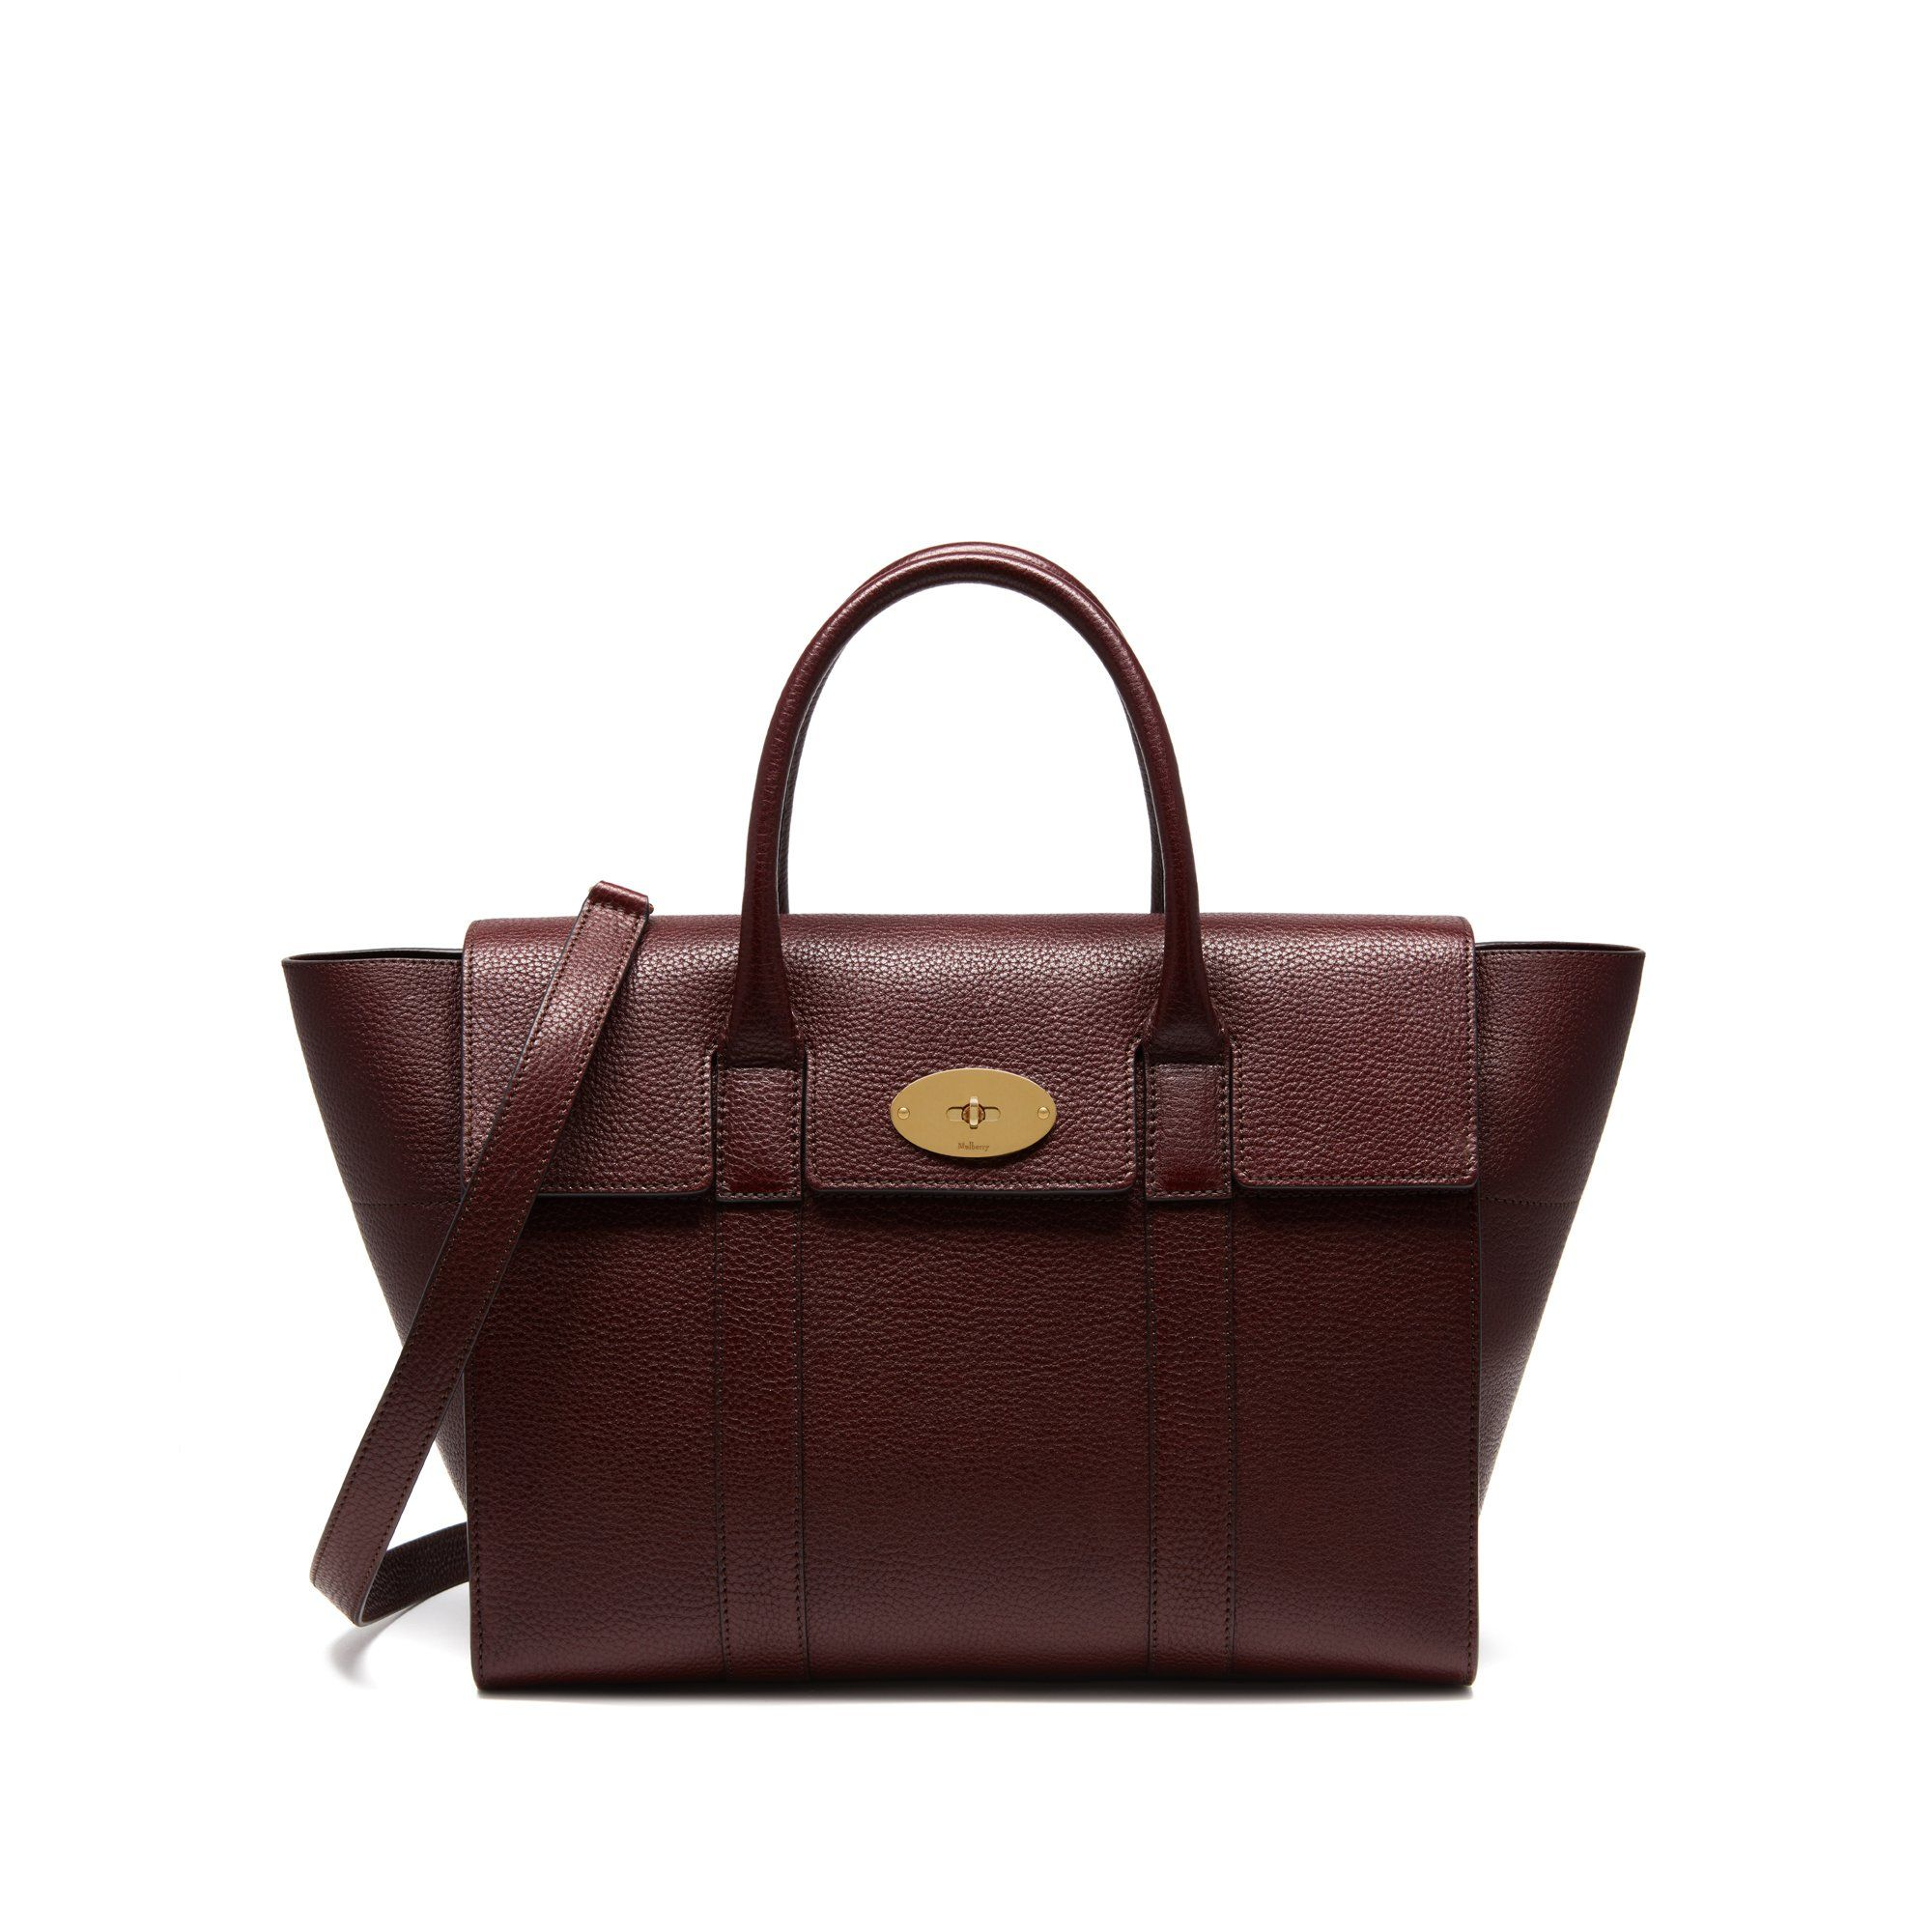 2123cd25f287 promo code for mulberry bayswater laptop 83aee 4b8a9